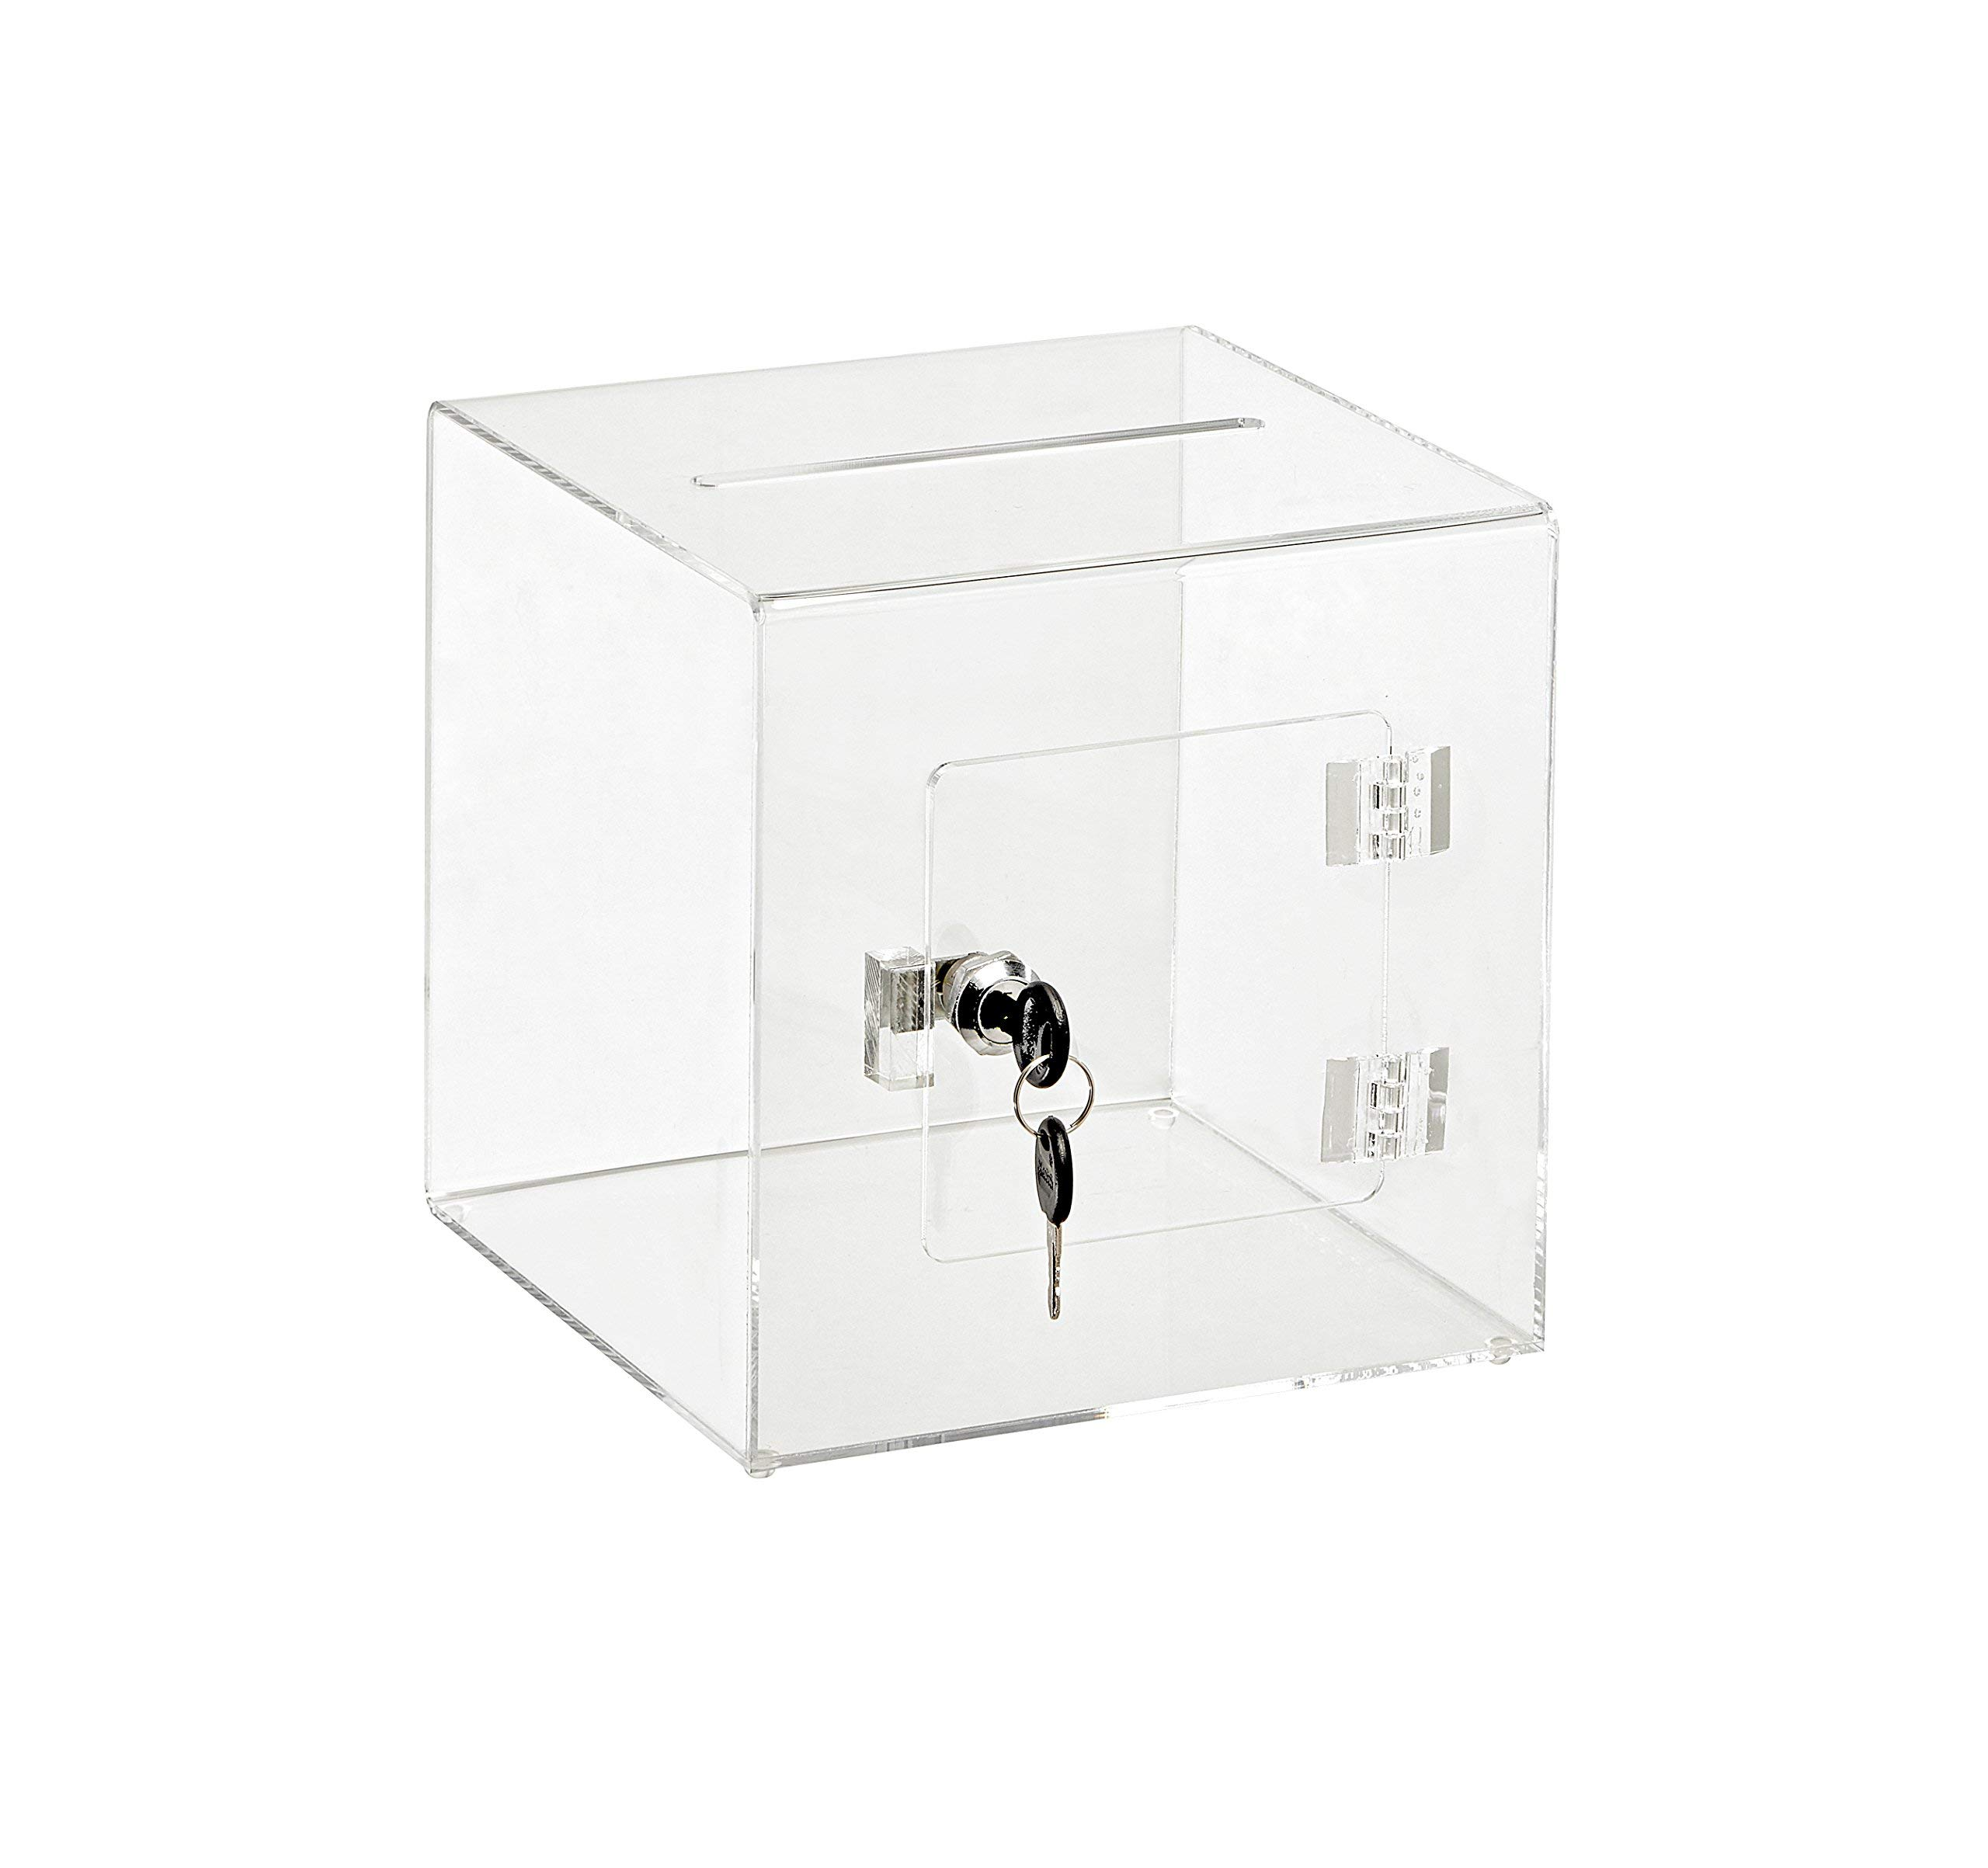 AdirOffice 8'' x 8'' Acrylic Ballot Box Donation Box with Easy Open Rear Door - Durable Acrylic Box with Lock - Ideal for Voting, Charity & Suggestion Collection - Clear by AdirOffice